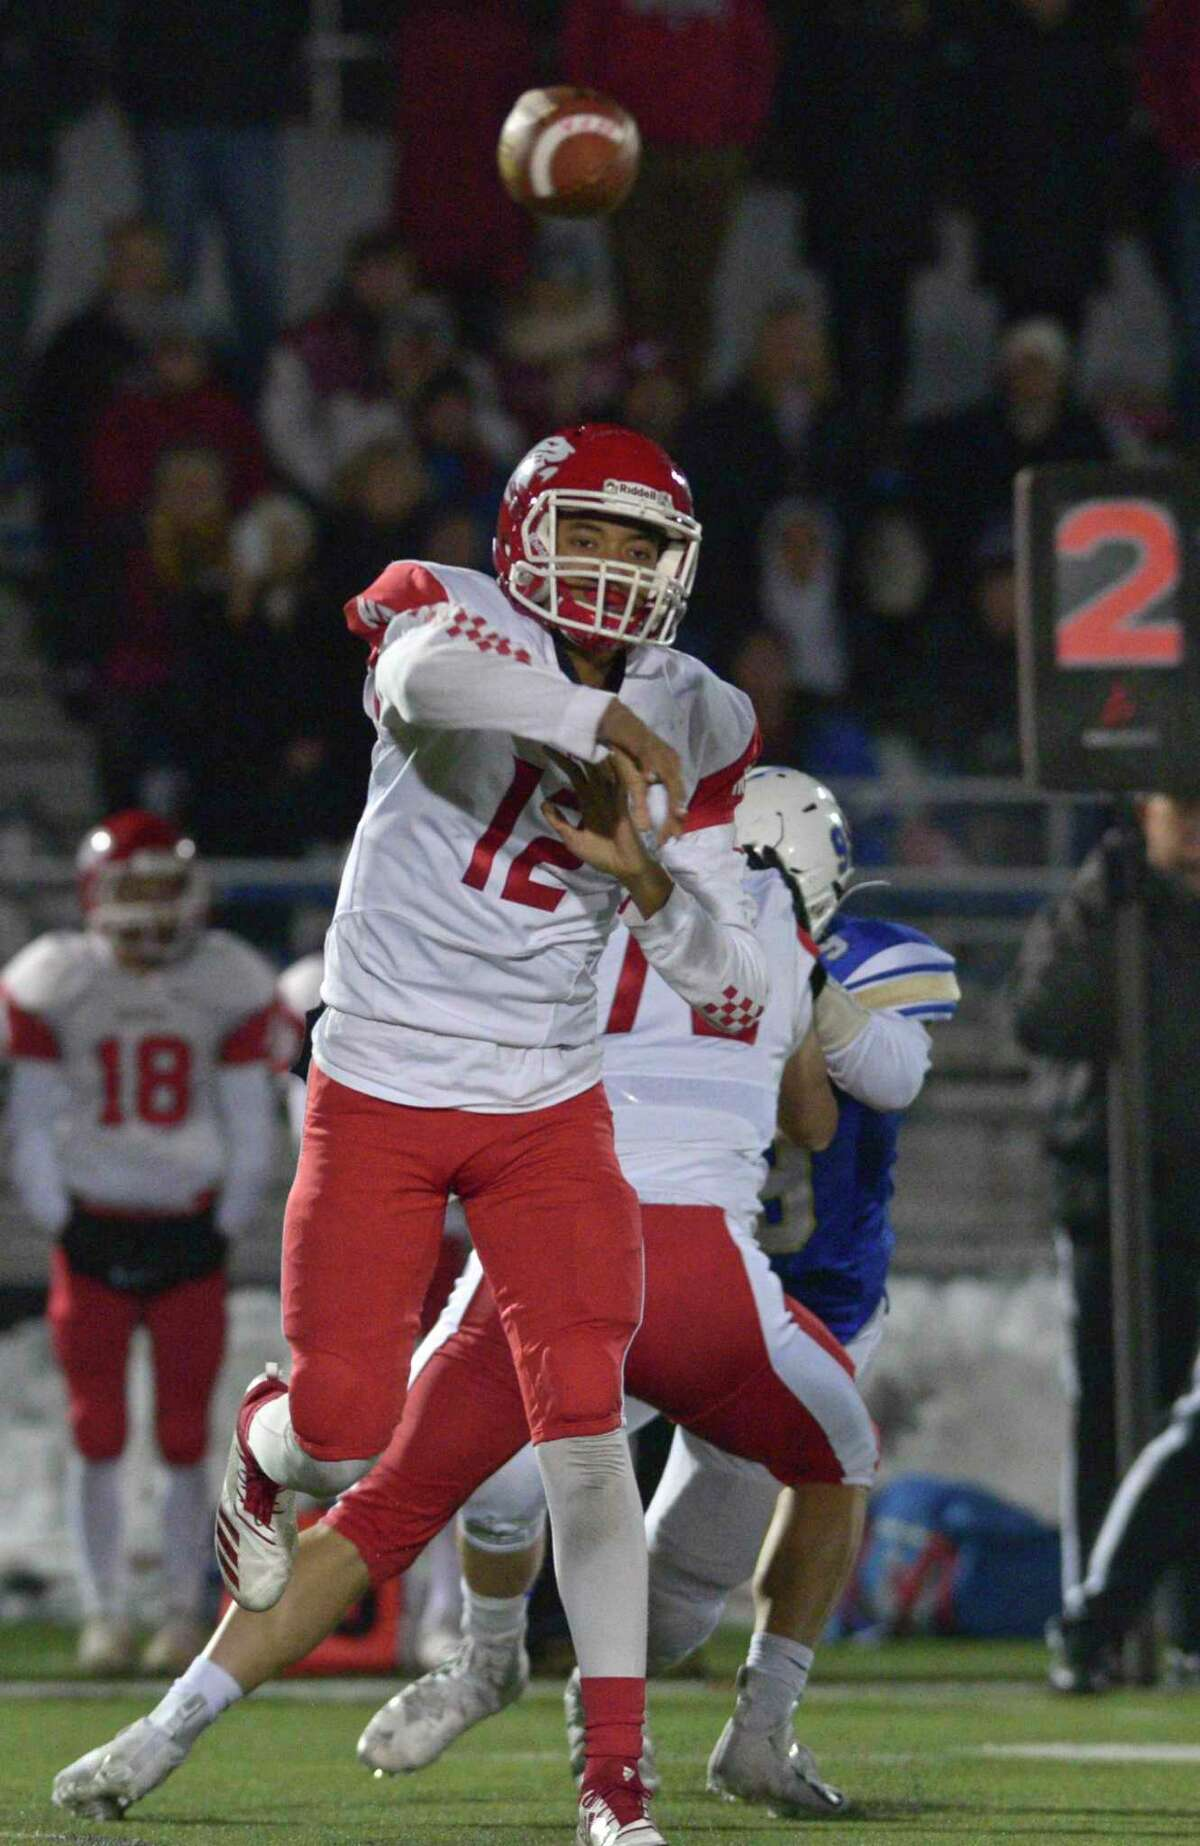 NFA quarterback Jayden Desilus throws a pass in the Class LL State Football Quarterfinal game between No.8 Norwich Free Academy and No. 1 Newtown high schools, Wednesday December 4, 2019, at Newtown High School, Newtown, Conn.